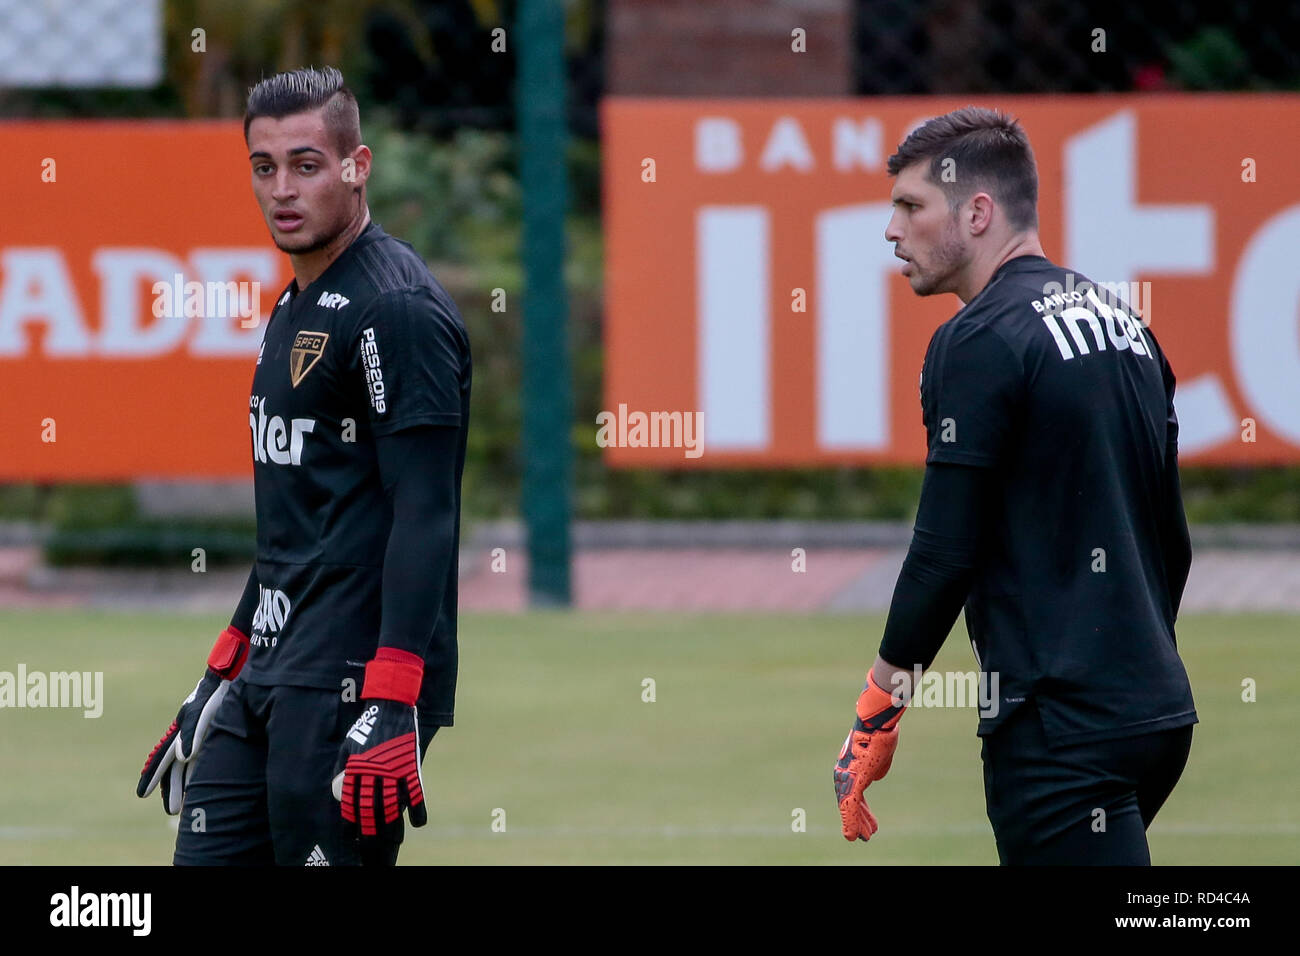 855a26cf2 SP - Sao Paulo - 01/16/2019 - Training of Sao Paulo - Jean (e) and Tiago  Volpi during training of Sao Paulo at CT Barra Funda. Photo: Marcello  Zambrana / ...